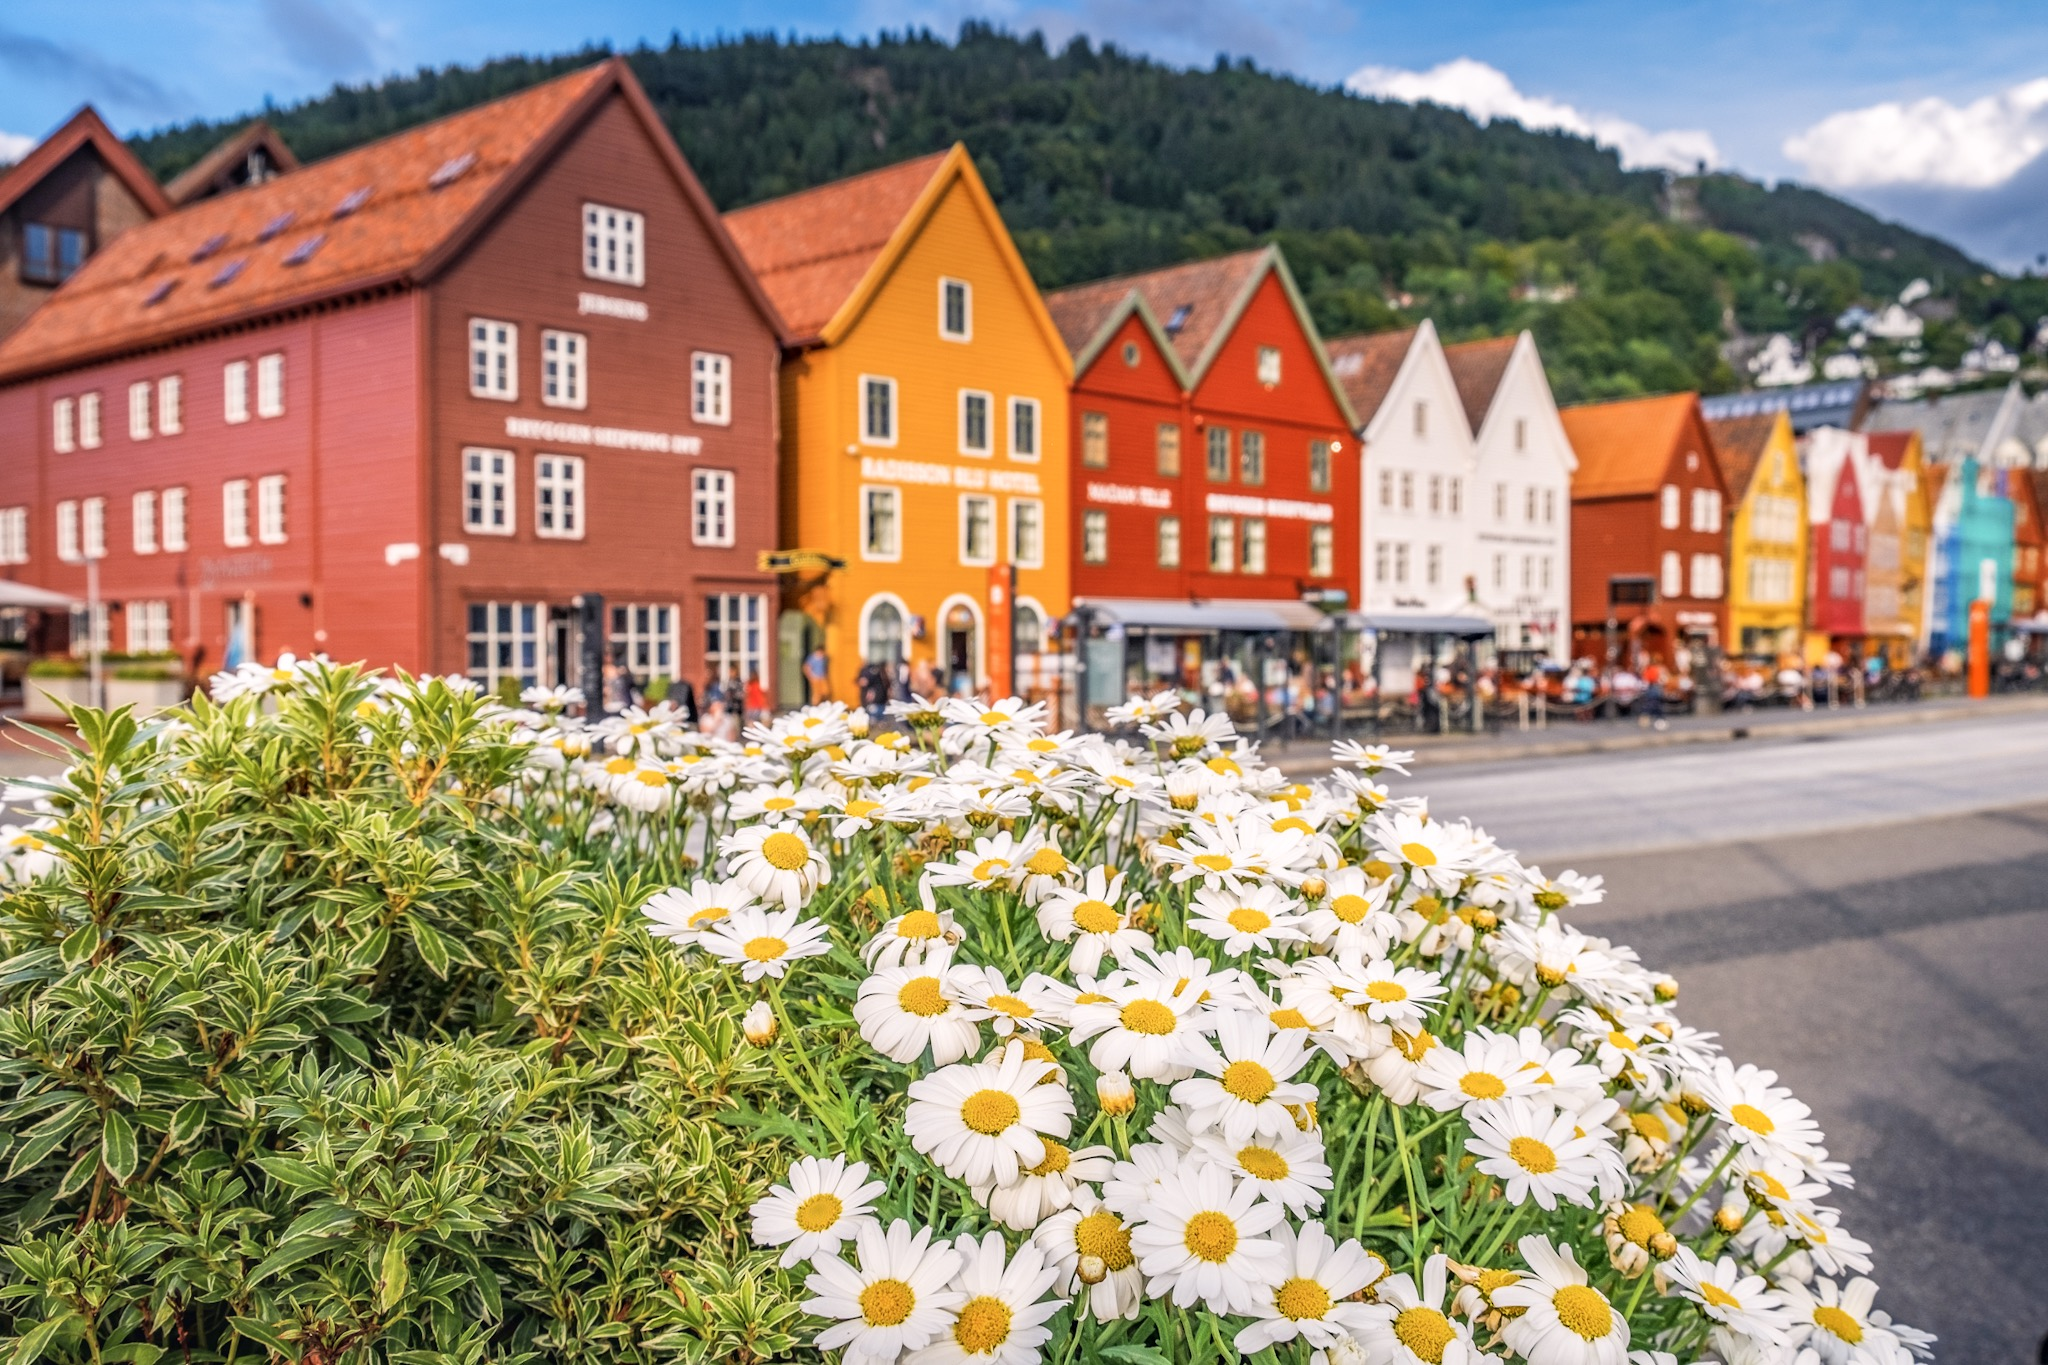 Daisies in front of the colourful houses of Bryggen in Bergen, Norway. 5 Days in Bergen.